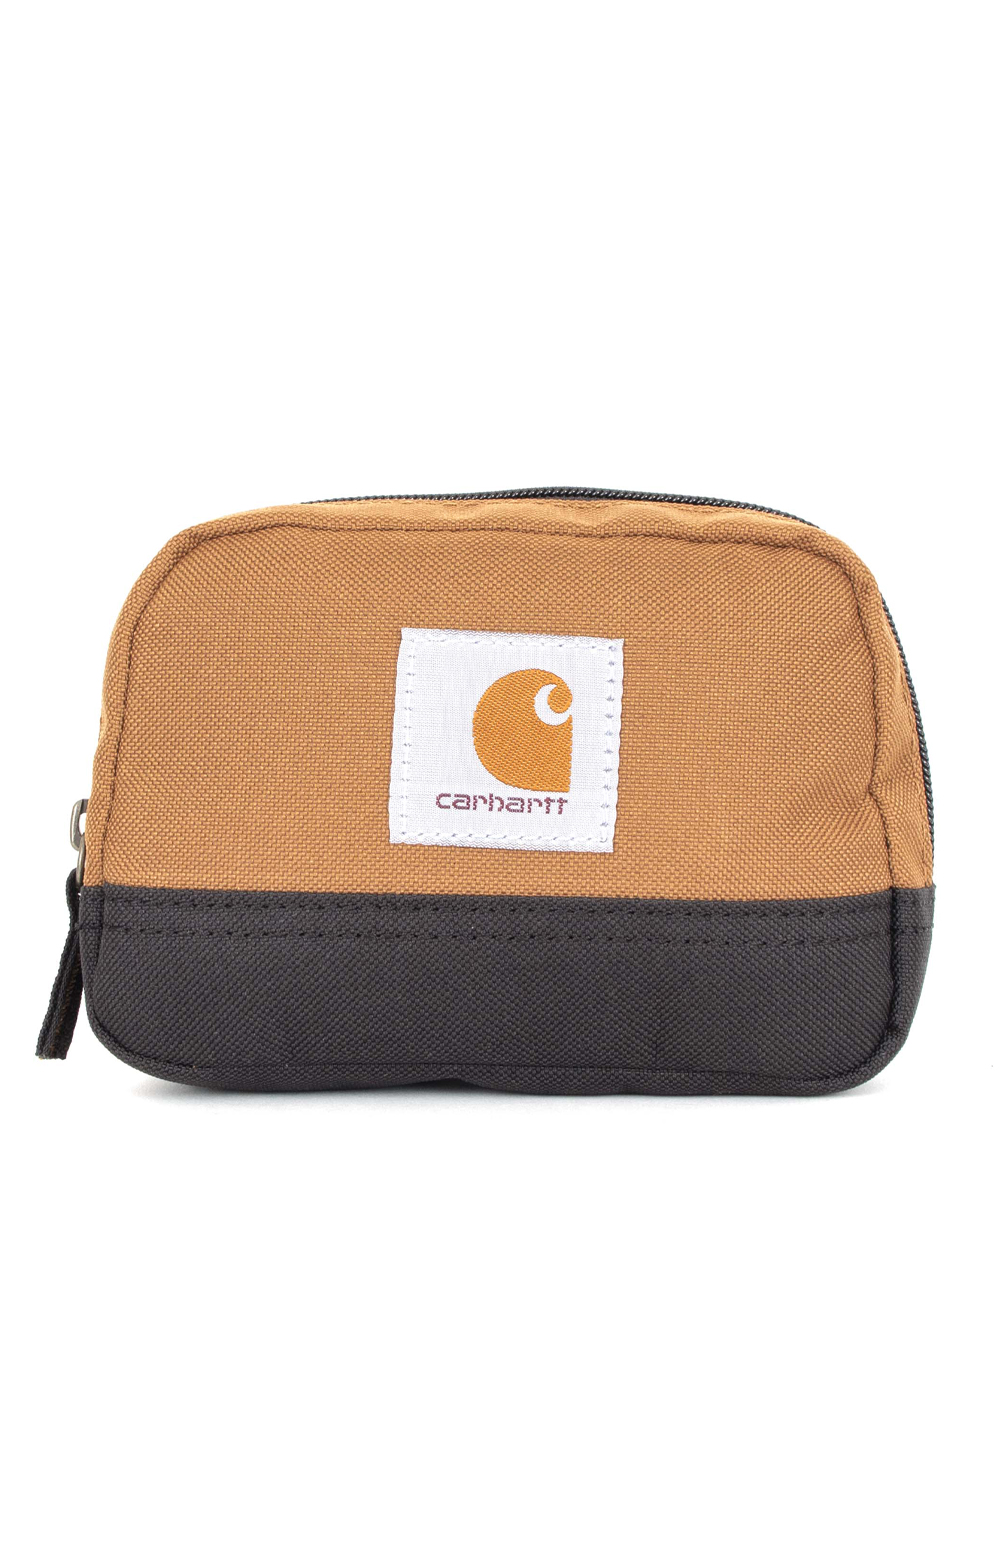 Necessities Pouch - Carhartt Brown